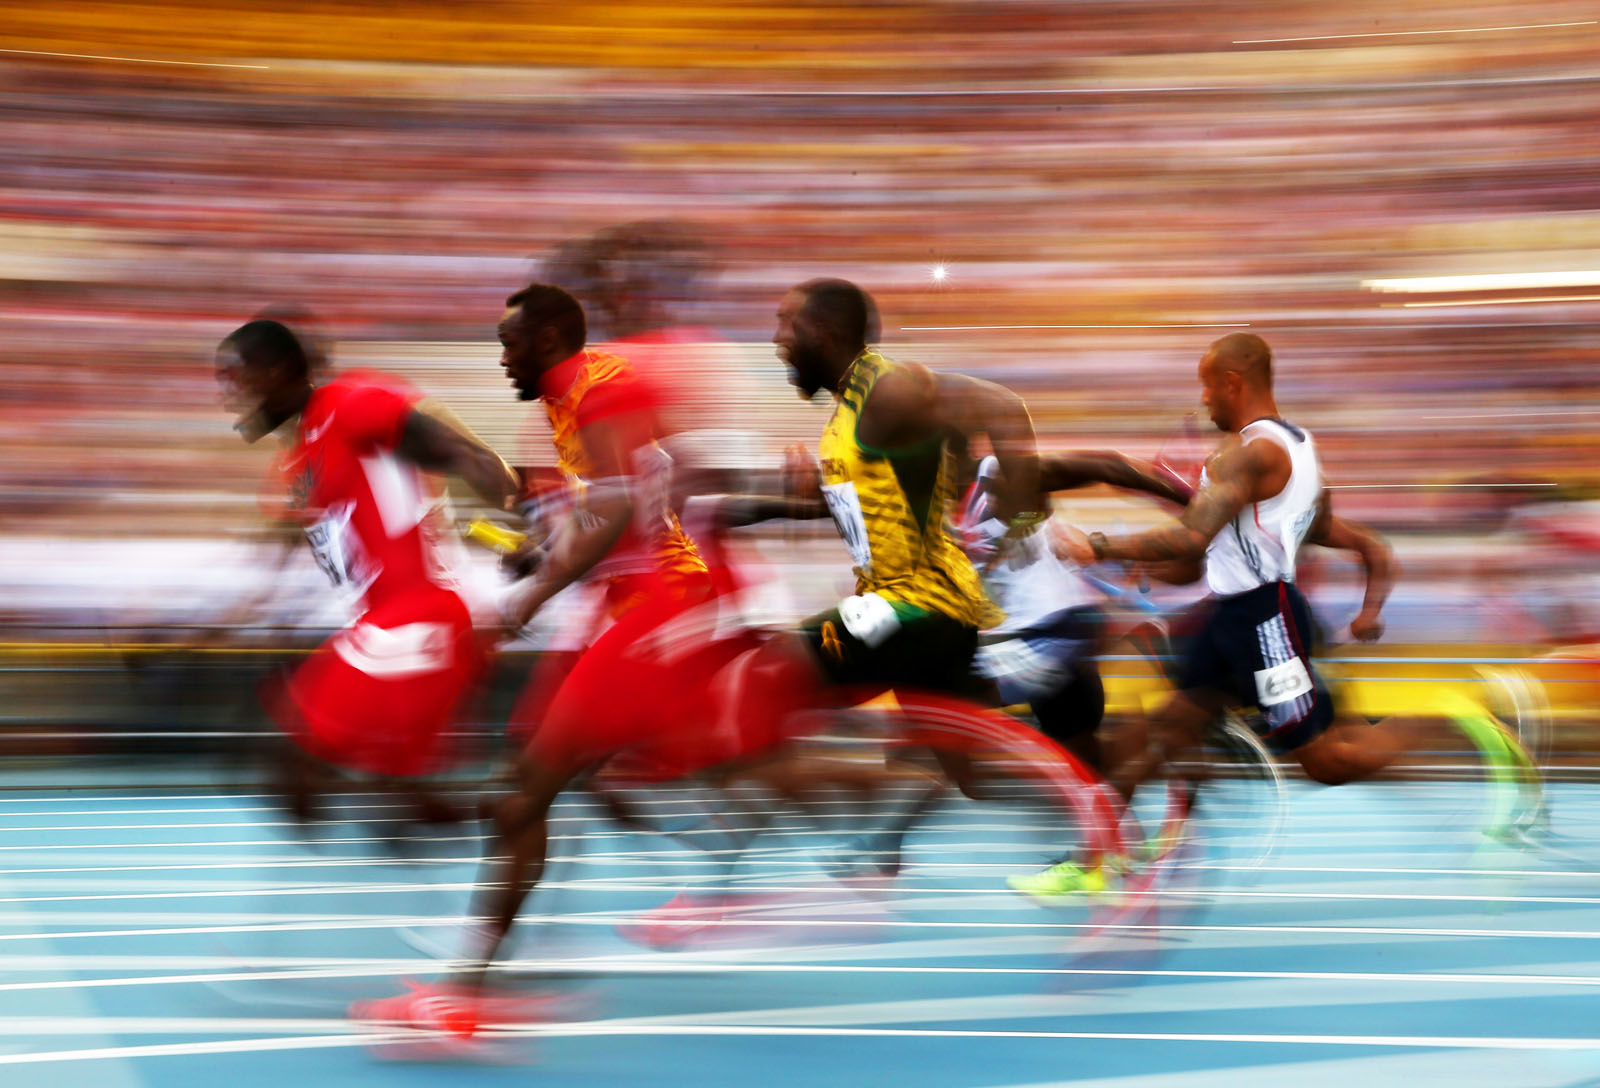 ATHLETICS-WORLD-2013-4X100M